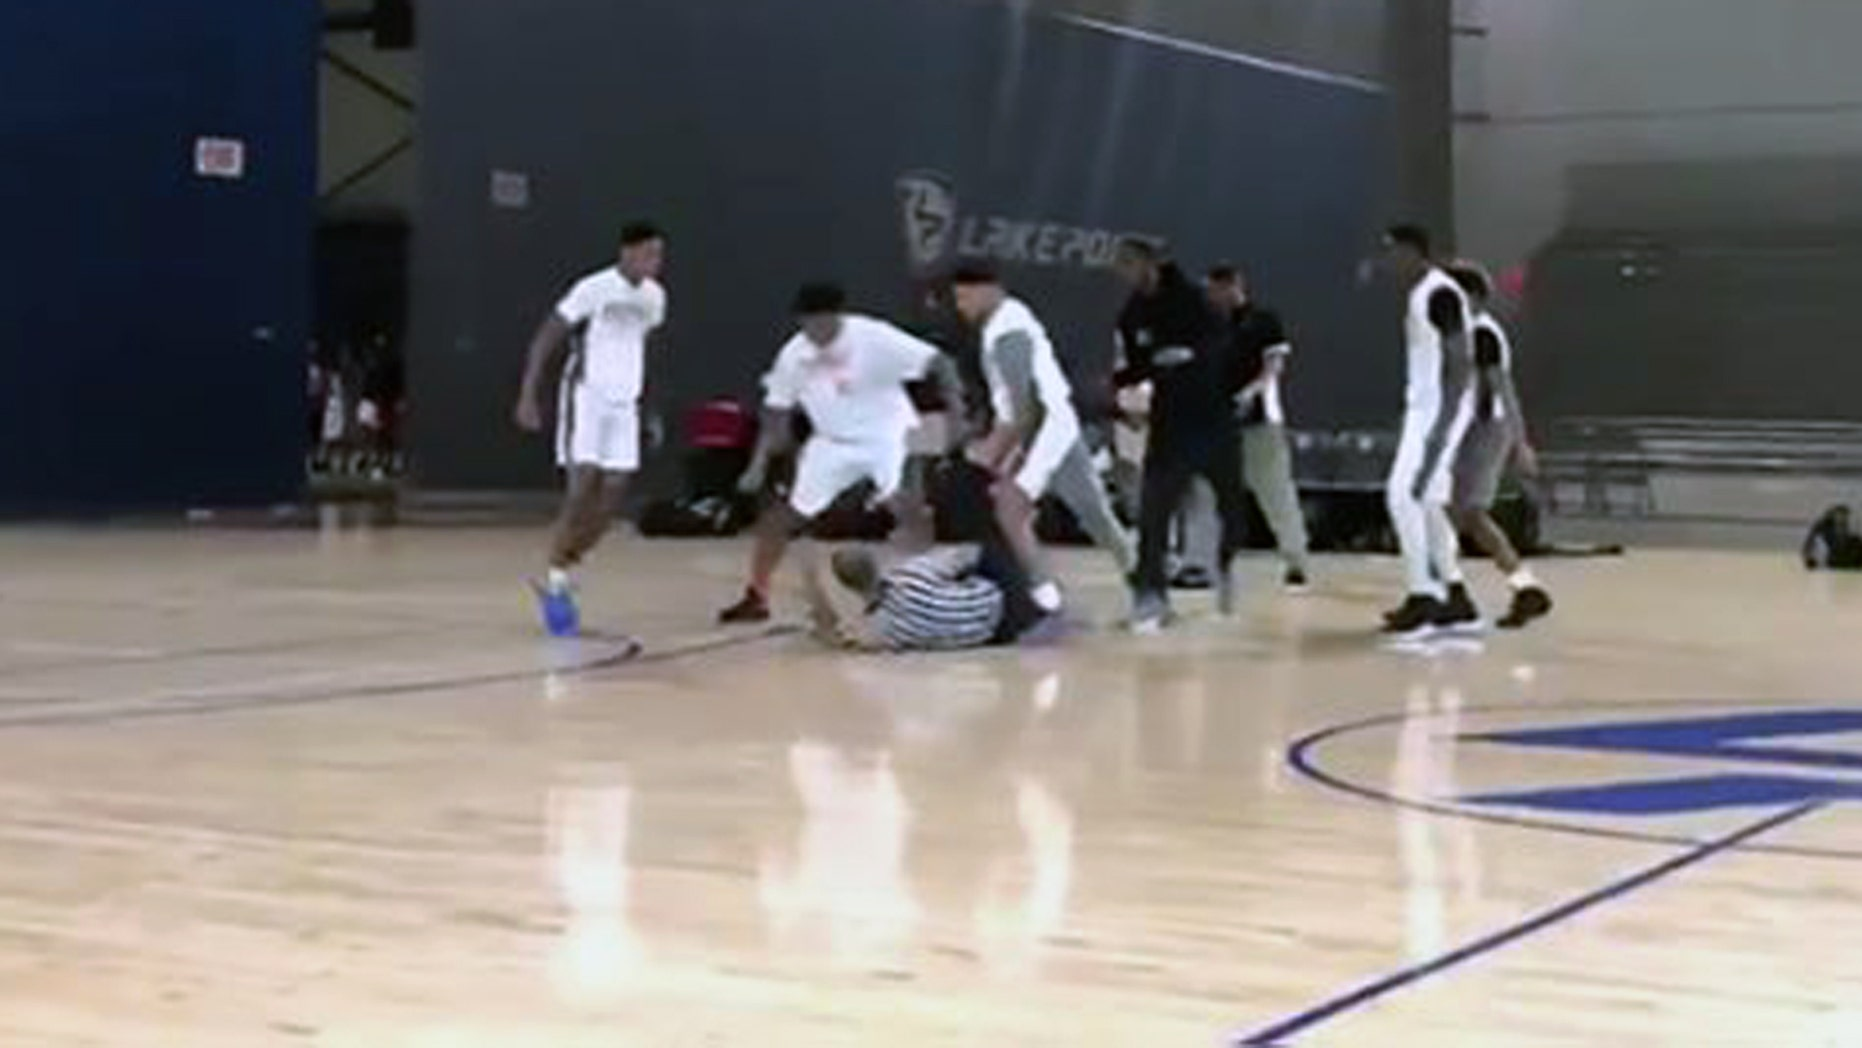 Players surrounded a fallen referee after a fight breaks out at an AAU game in Cartersville, Ga. Sunday